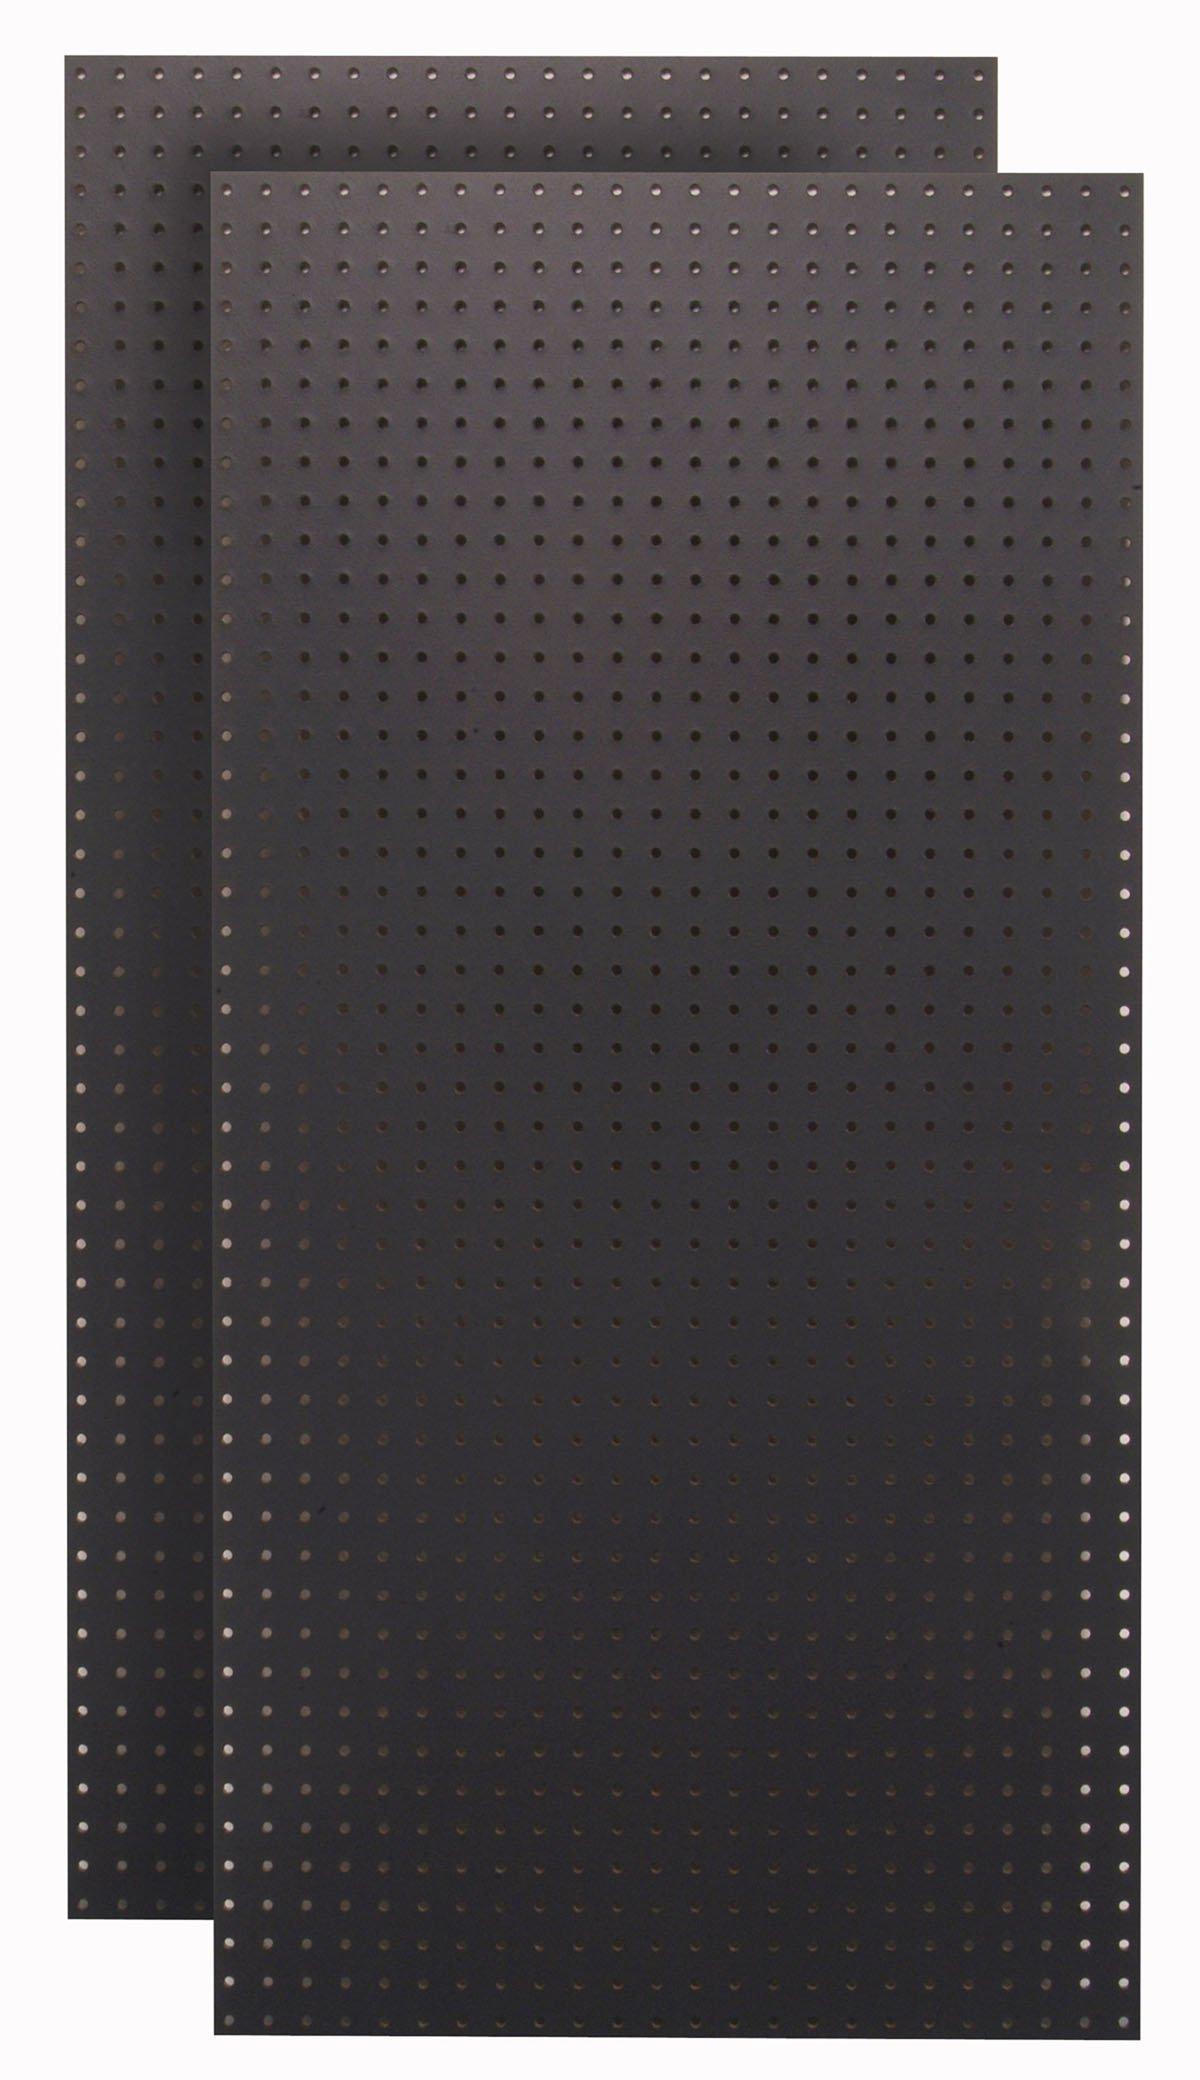 Tempered Wood Pegboard TPB-2BKF 24-Inch W x 48-Inch H x 1/4-Inch D Custom Painted Heavy Duty Round Hole Pegboards, Jet Black